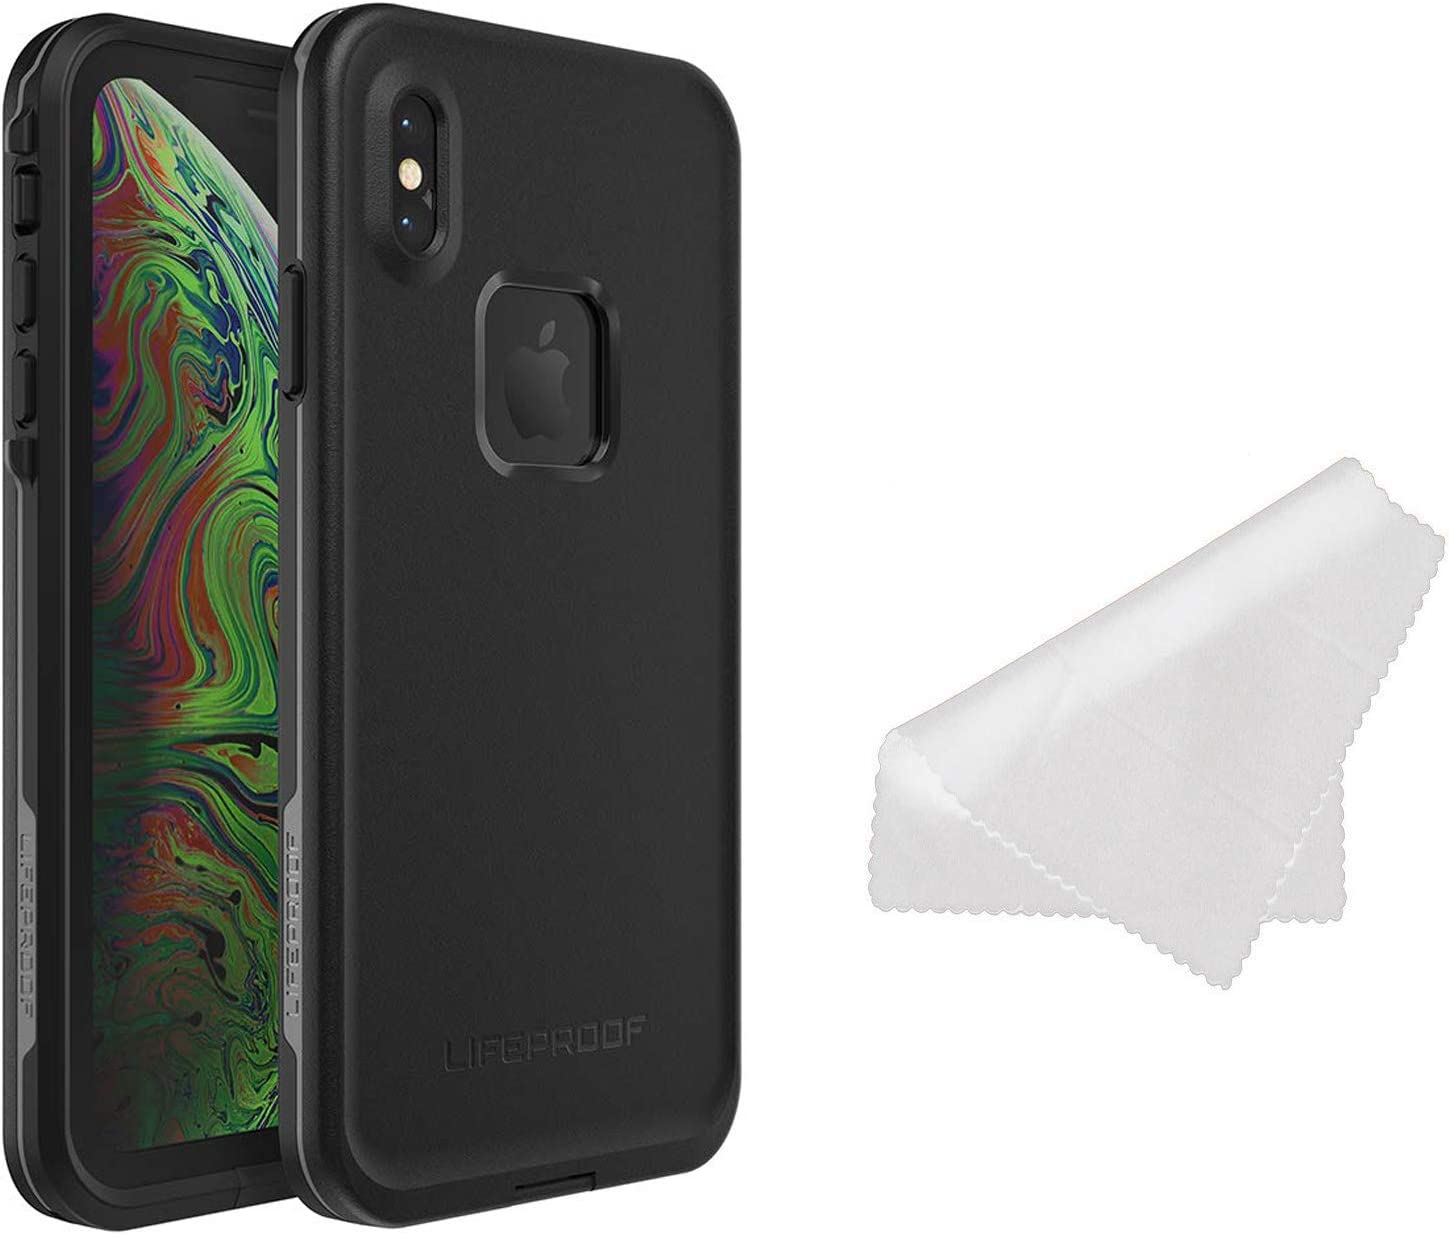 LifeProof FRE Series Waterproof Case for iPhone Xs Max (ONLY) with Cleaning Cloth - Retail Packaging - Asphalt (Black/Dark Grey)